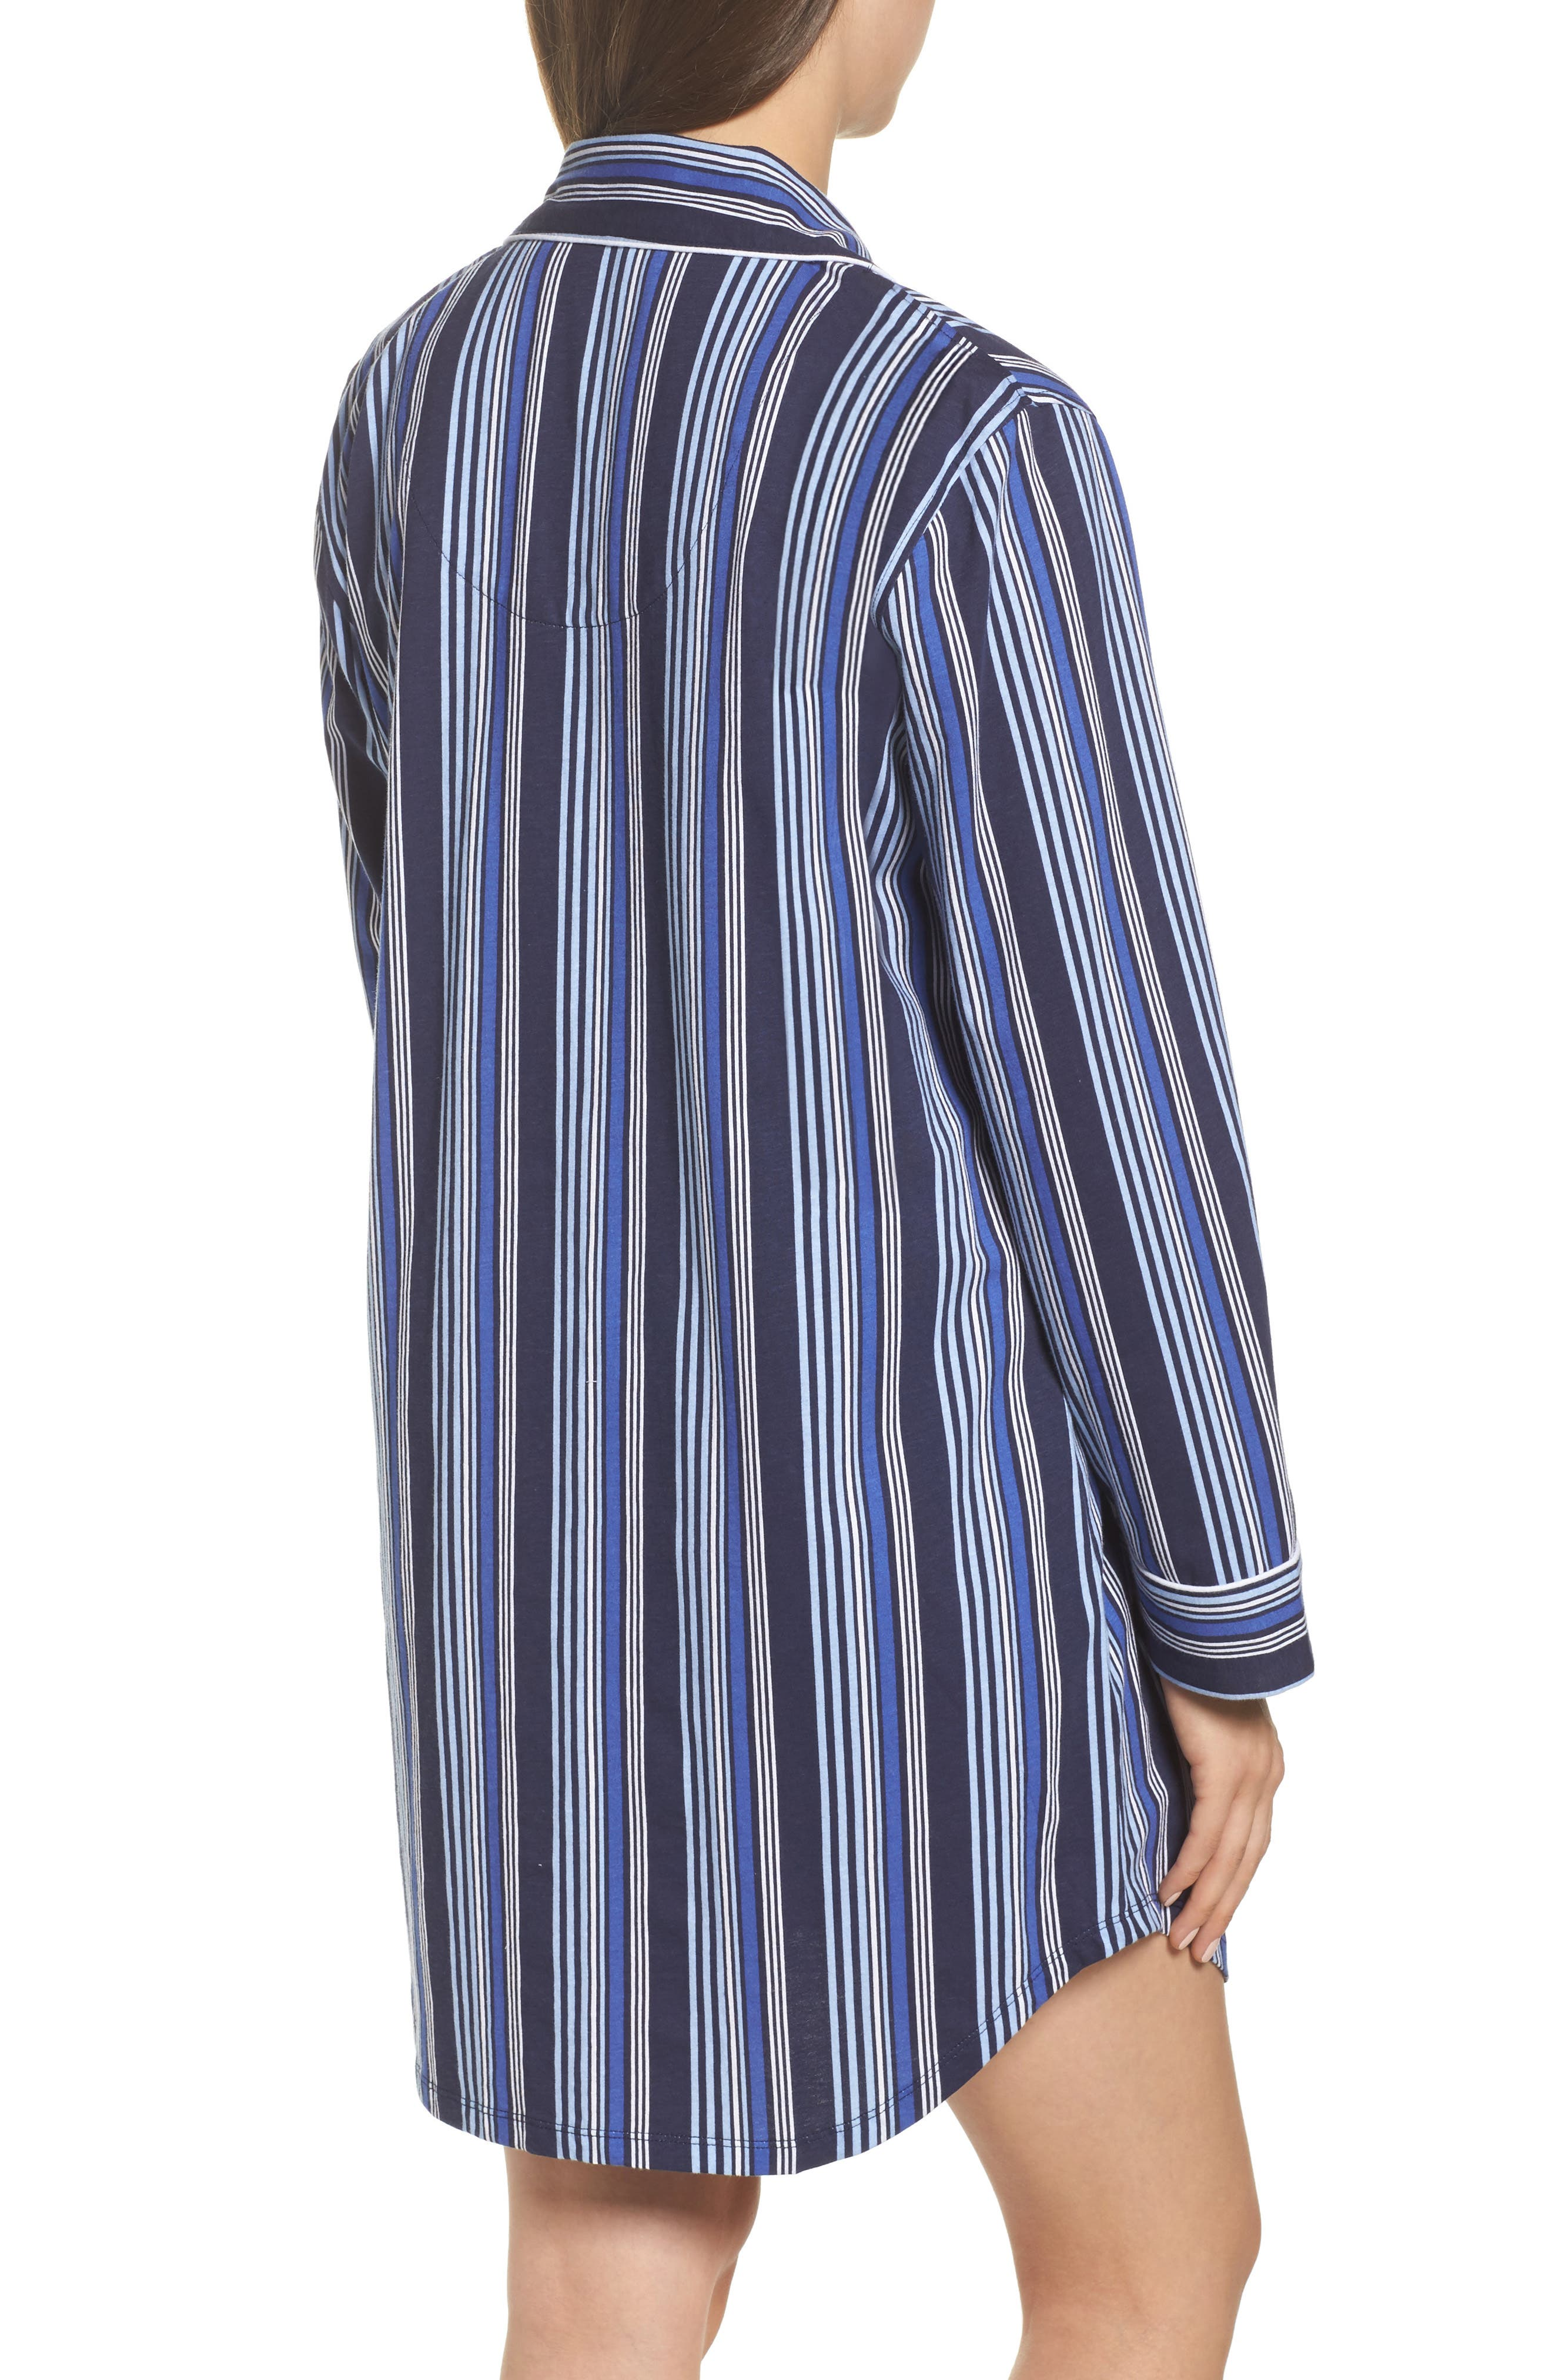 Stripe Sleep Shirt,                             Alternate thumbnail 2, color,                             486